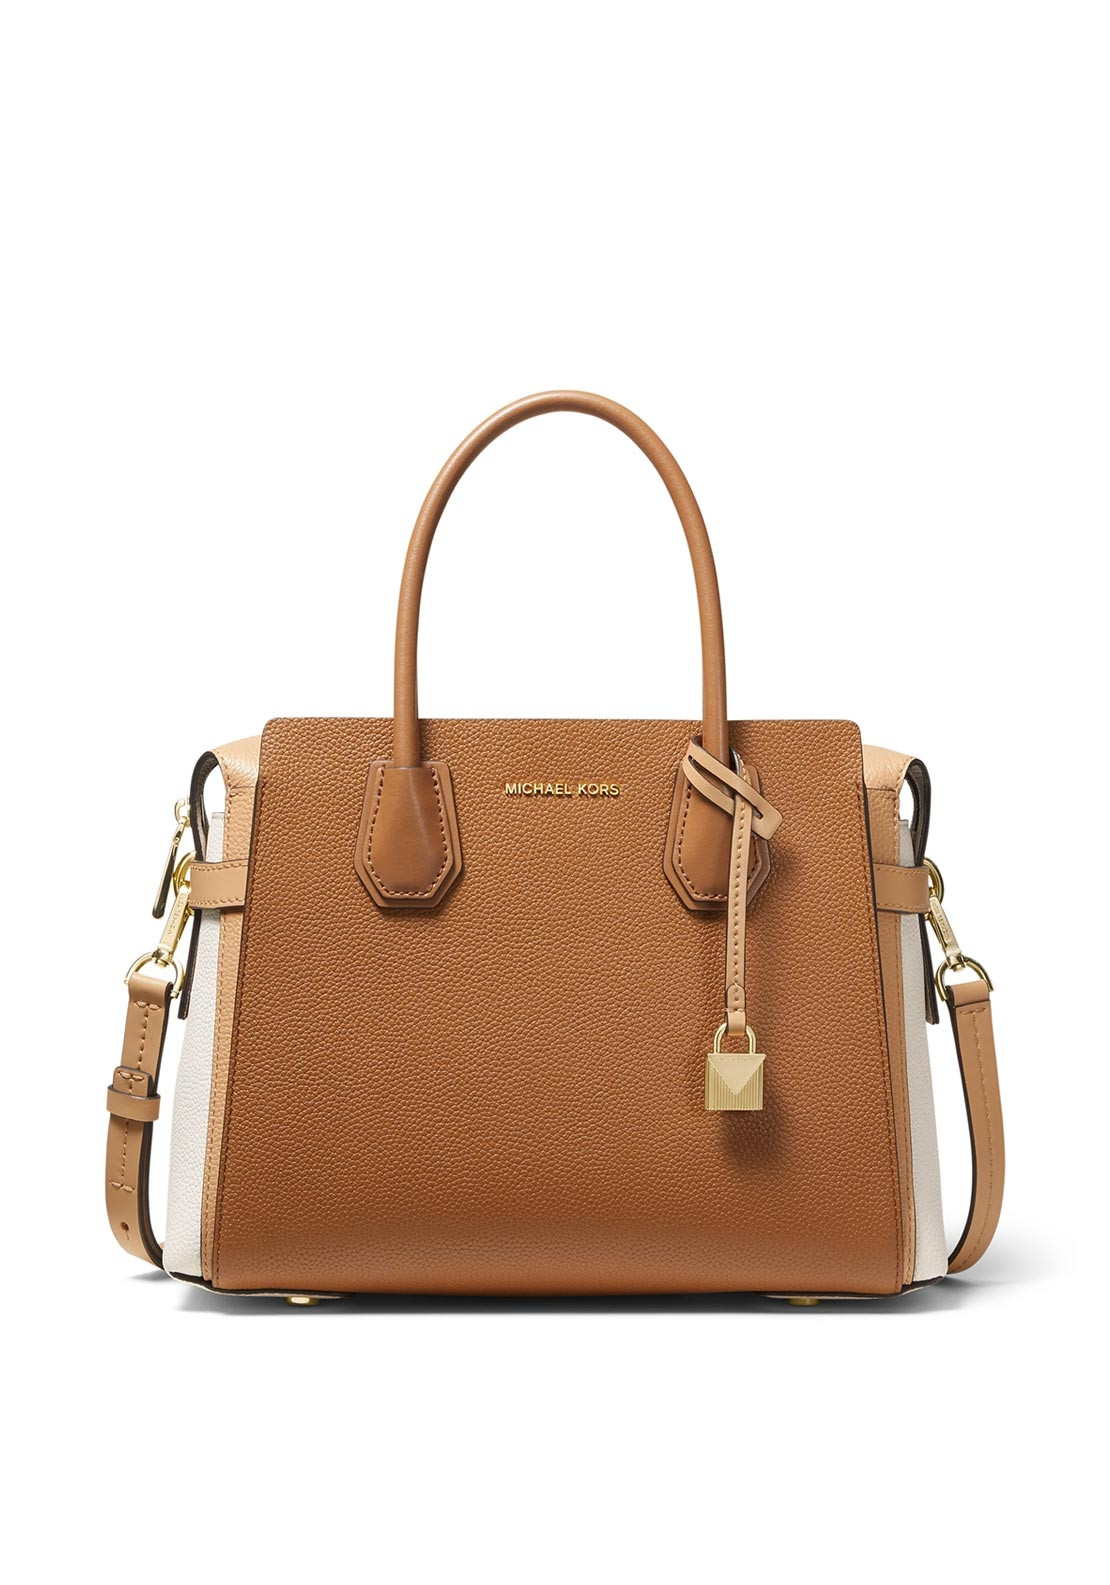 7fb838e0e765e8 MICHAEL Michael Kors Mercer Leather Grab Bag, Tan. Be the first to review  this product